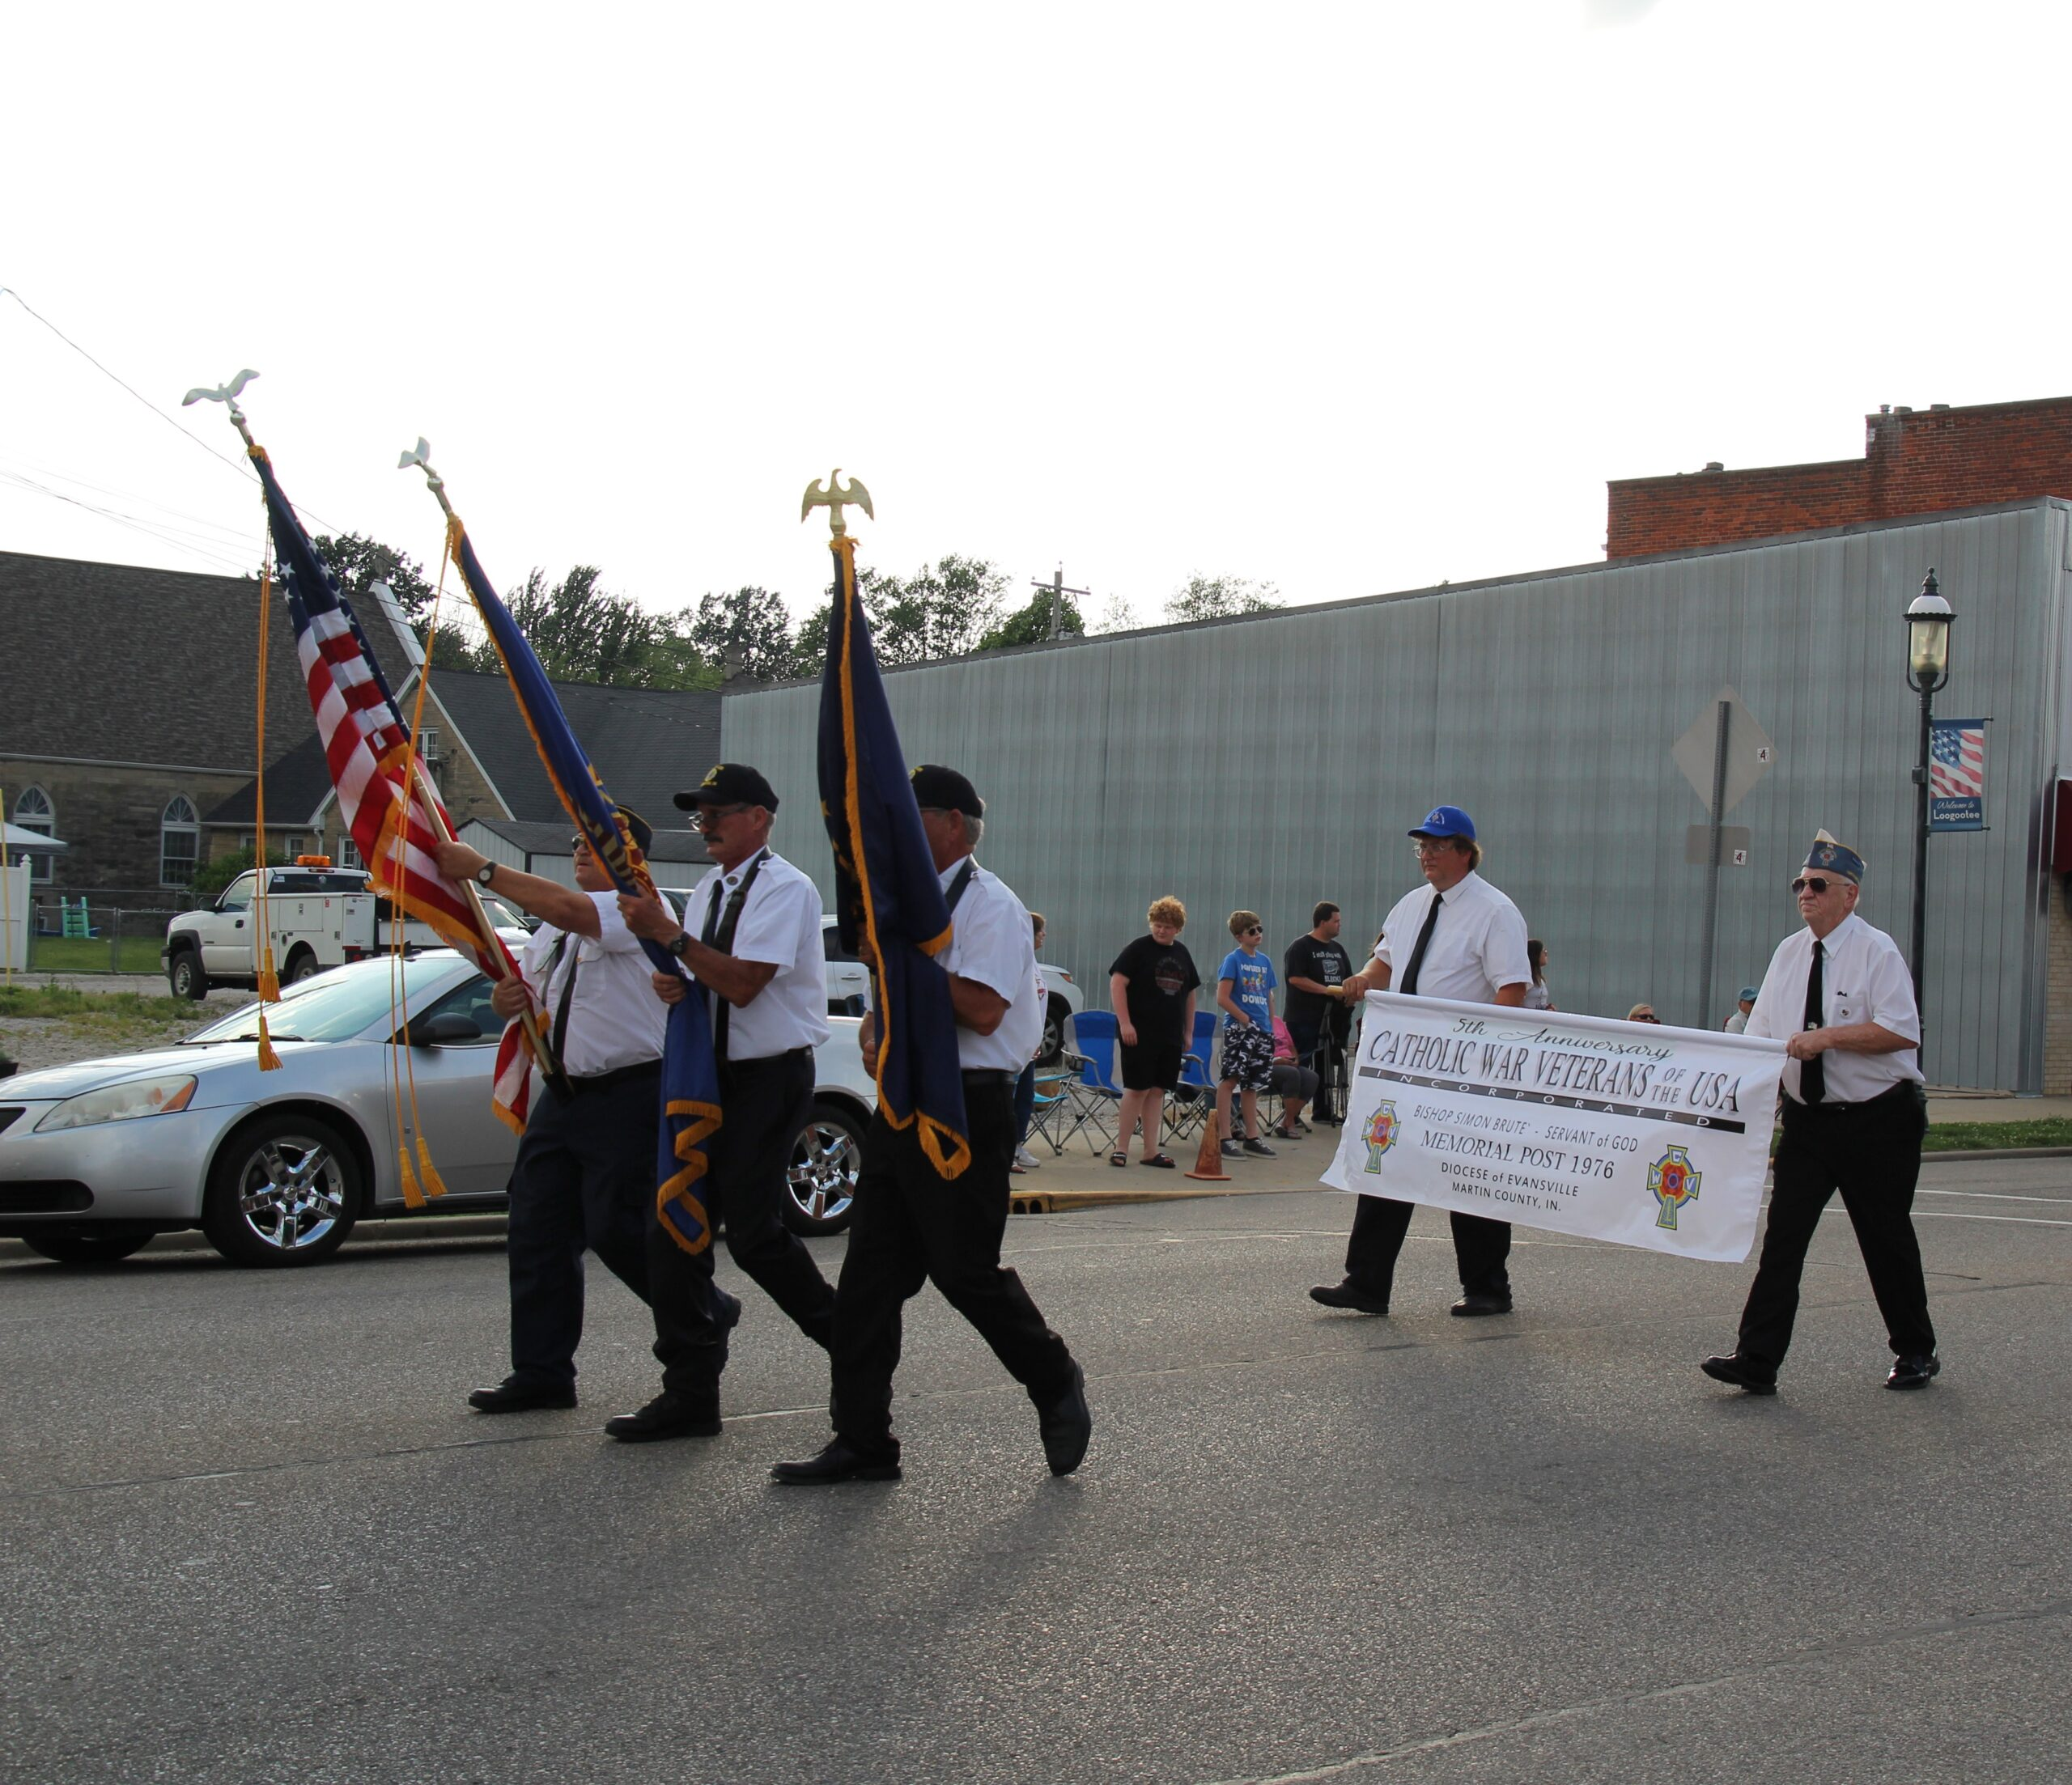 The Catholic War Veterans Post 1976 presented the colors for the 2021 Loogootee Summerfest parade June 26, which was also Post 1976's 5th anniversary of formal installation within the Diocese of Evansville. This is the first Post of Catholic War Veterans in the State of Indiana, according to members. Pictured are Dan Forrester, front row left, Paul Truelove, Phil Todd, Mike Jones, back row left, and Bud Erler. Submitted photo